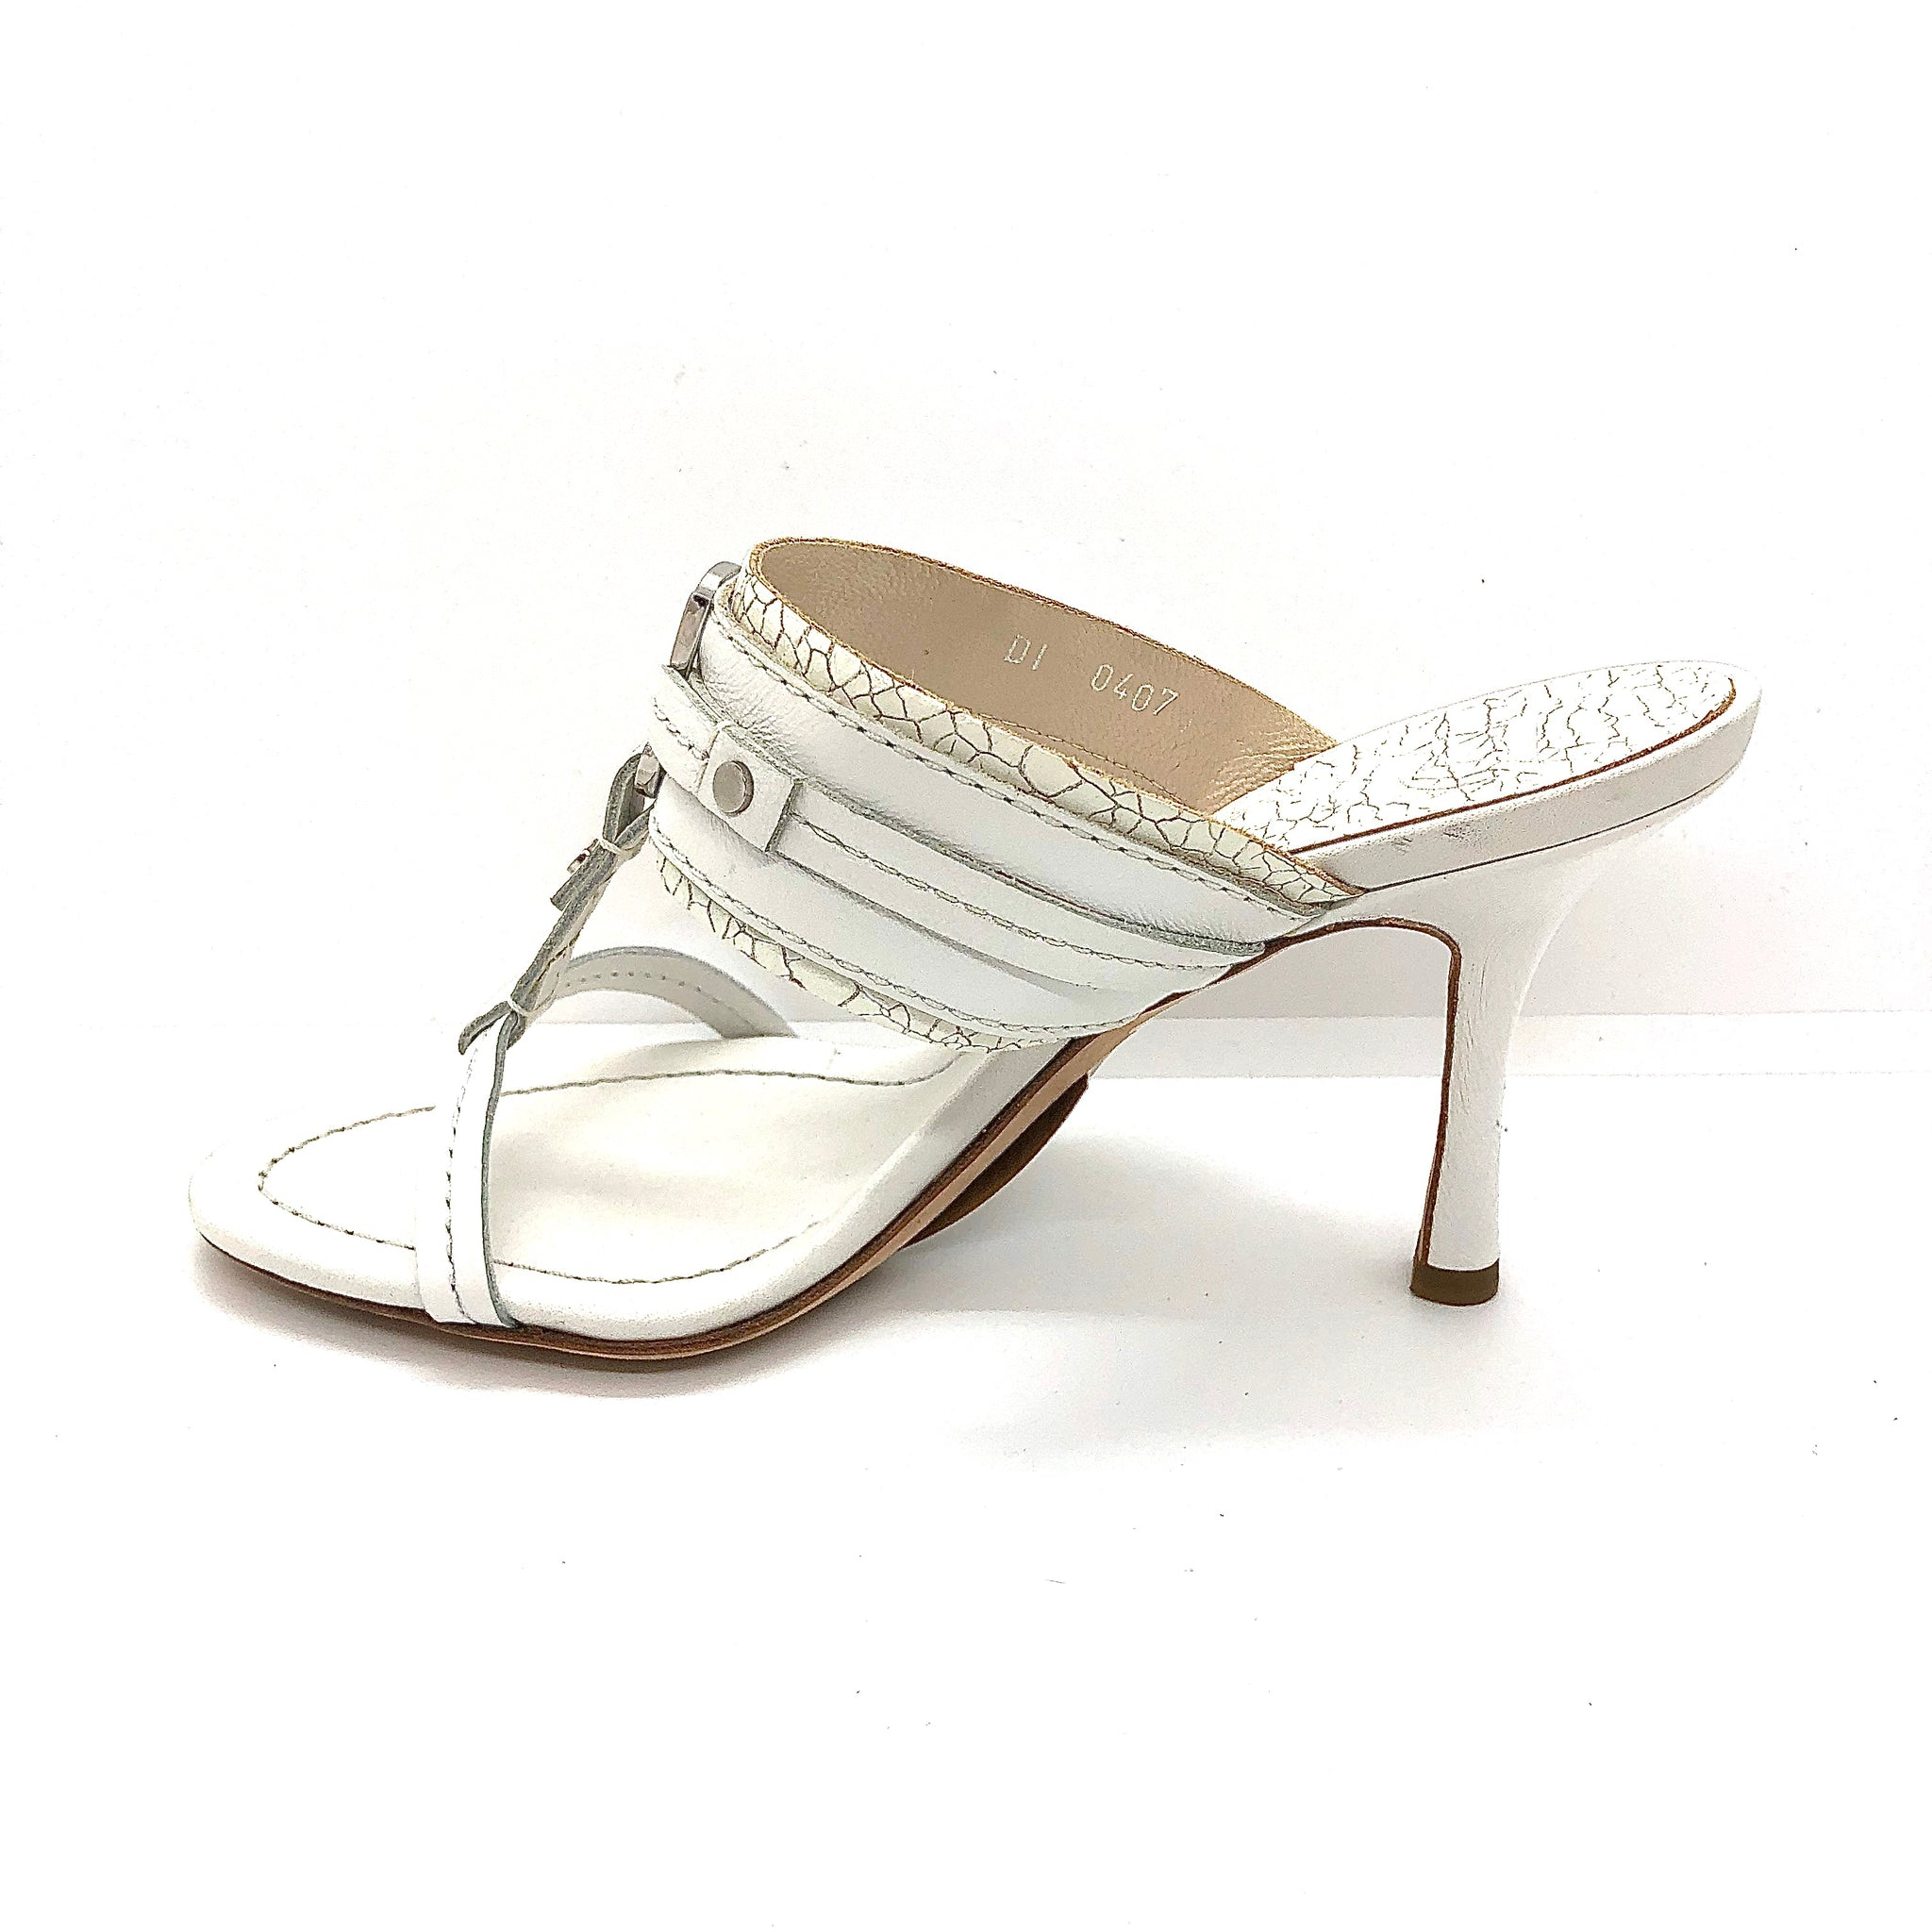 "Dior White Size 35.5 3.5"" Shoes"